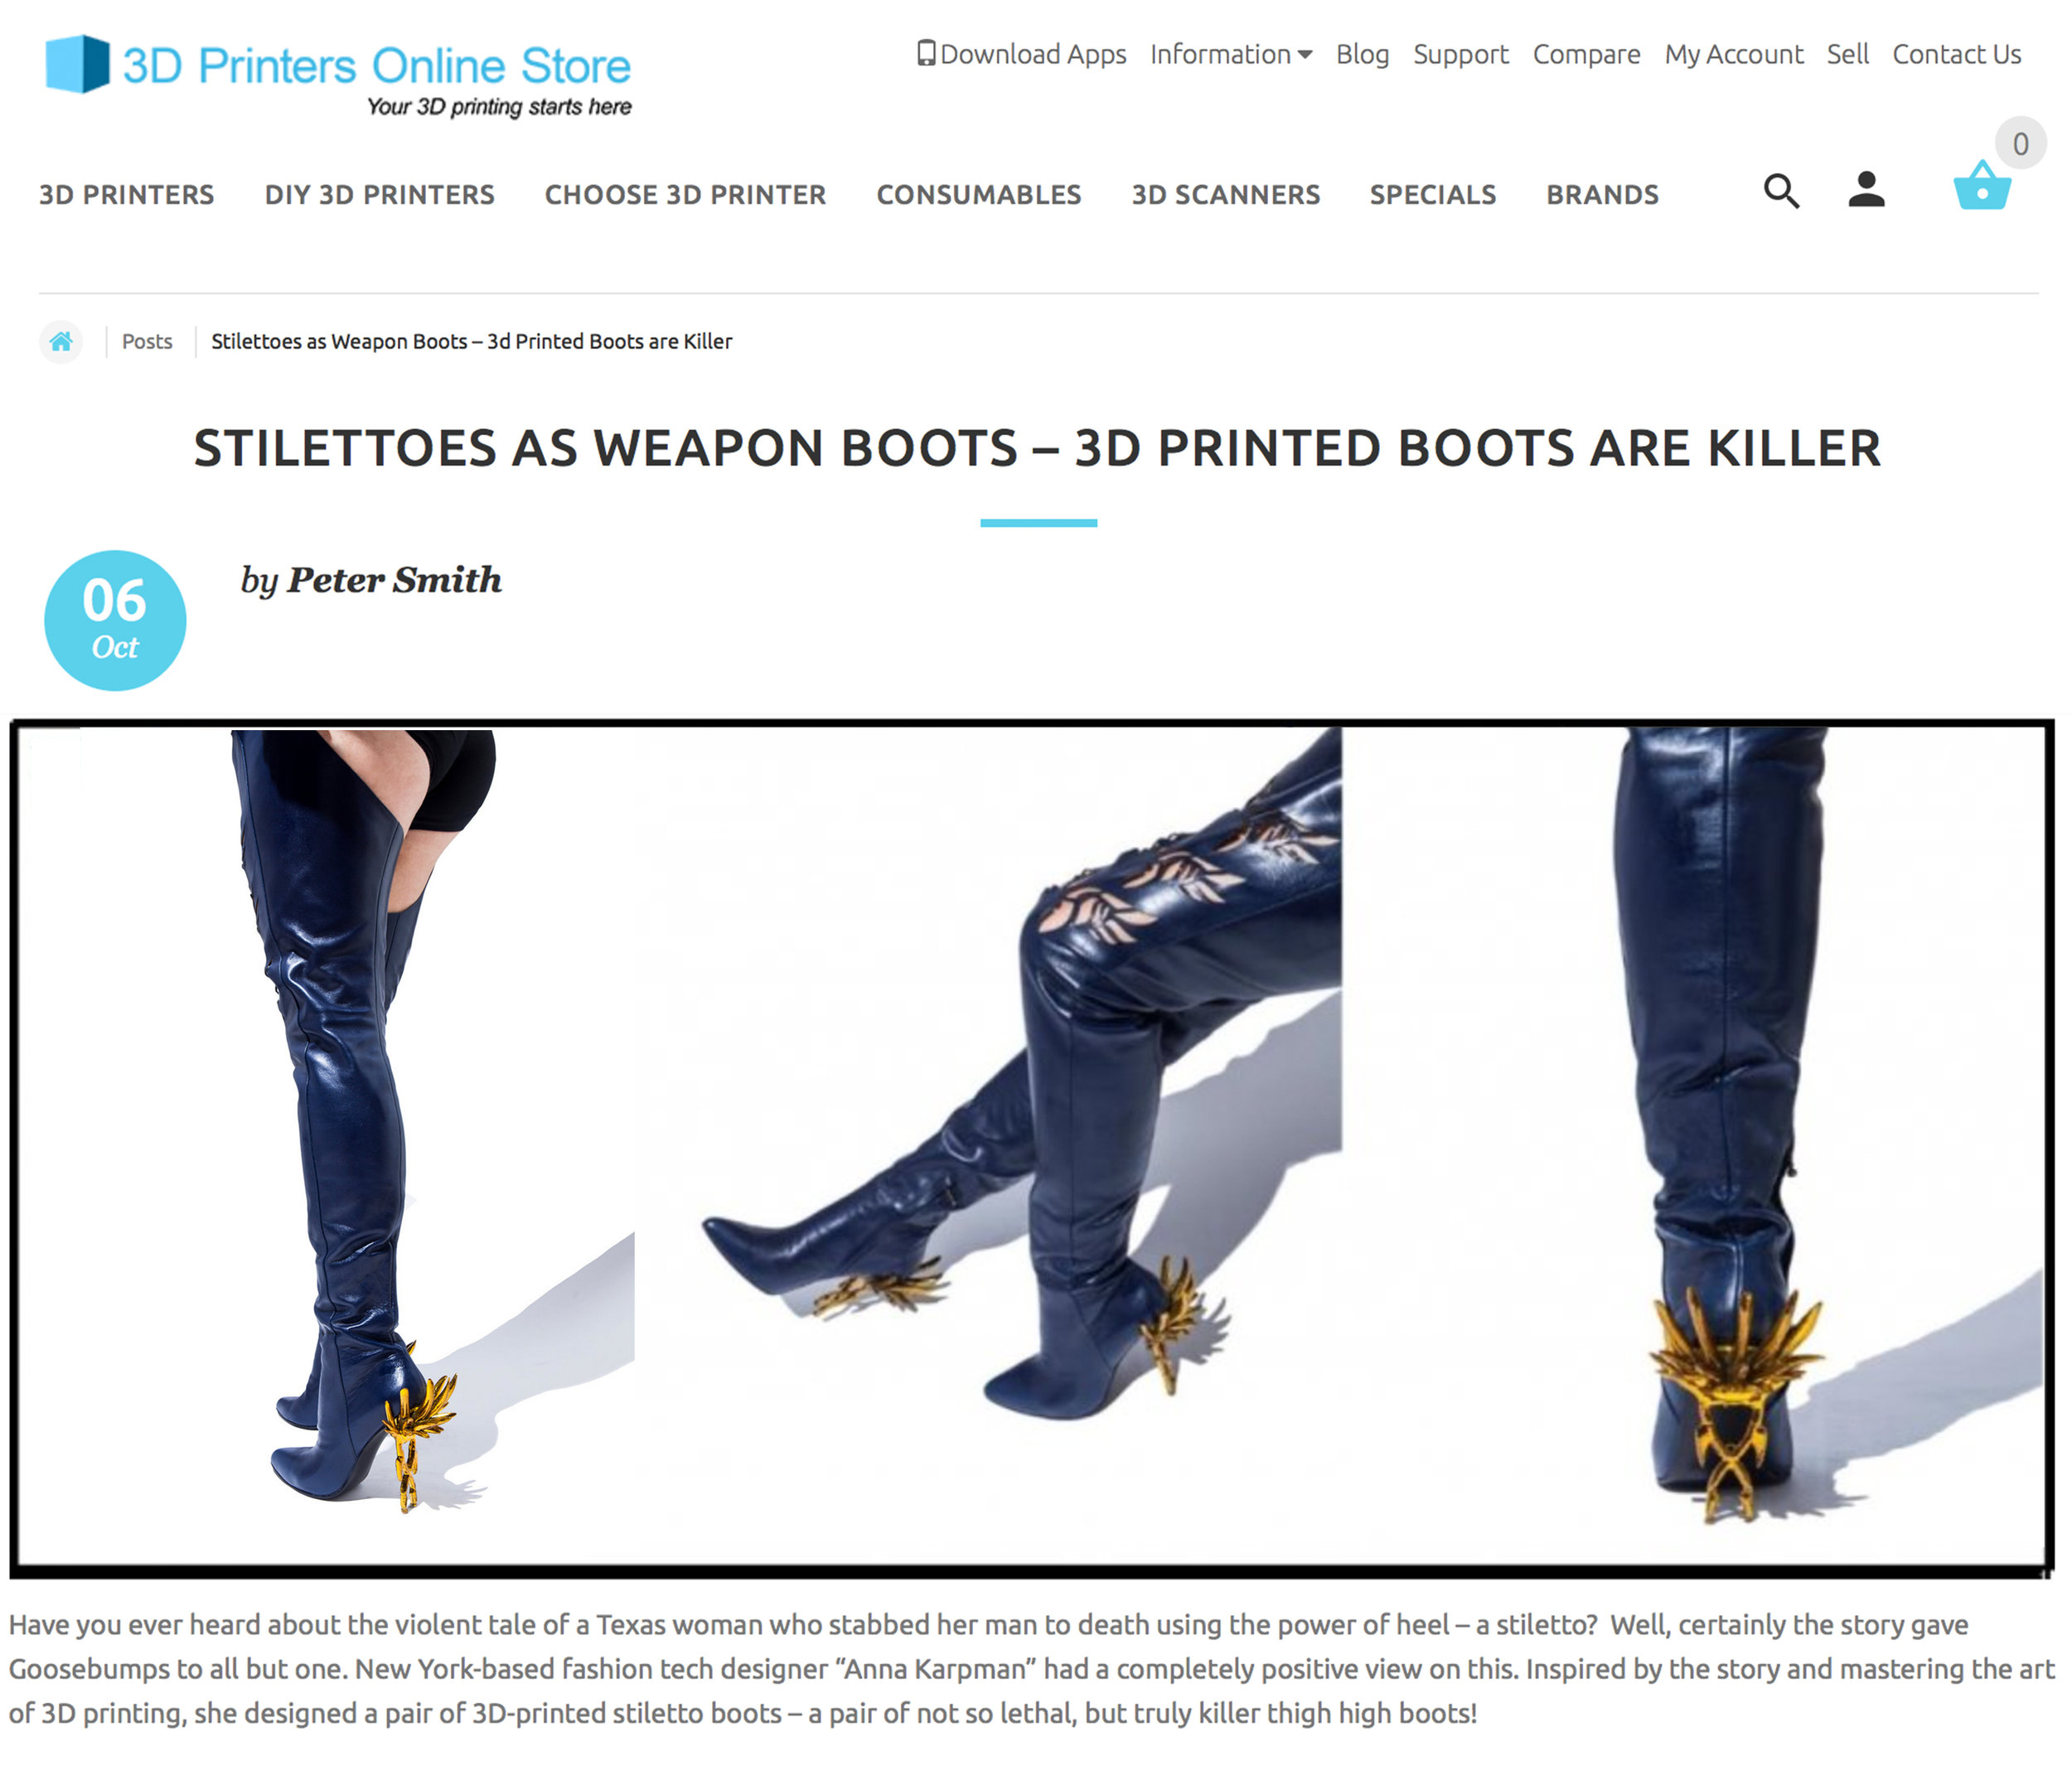 CONCEPT AK FEATURED ON 3DPRINTERSONLINESTORE.COM, OCTOBER 2016